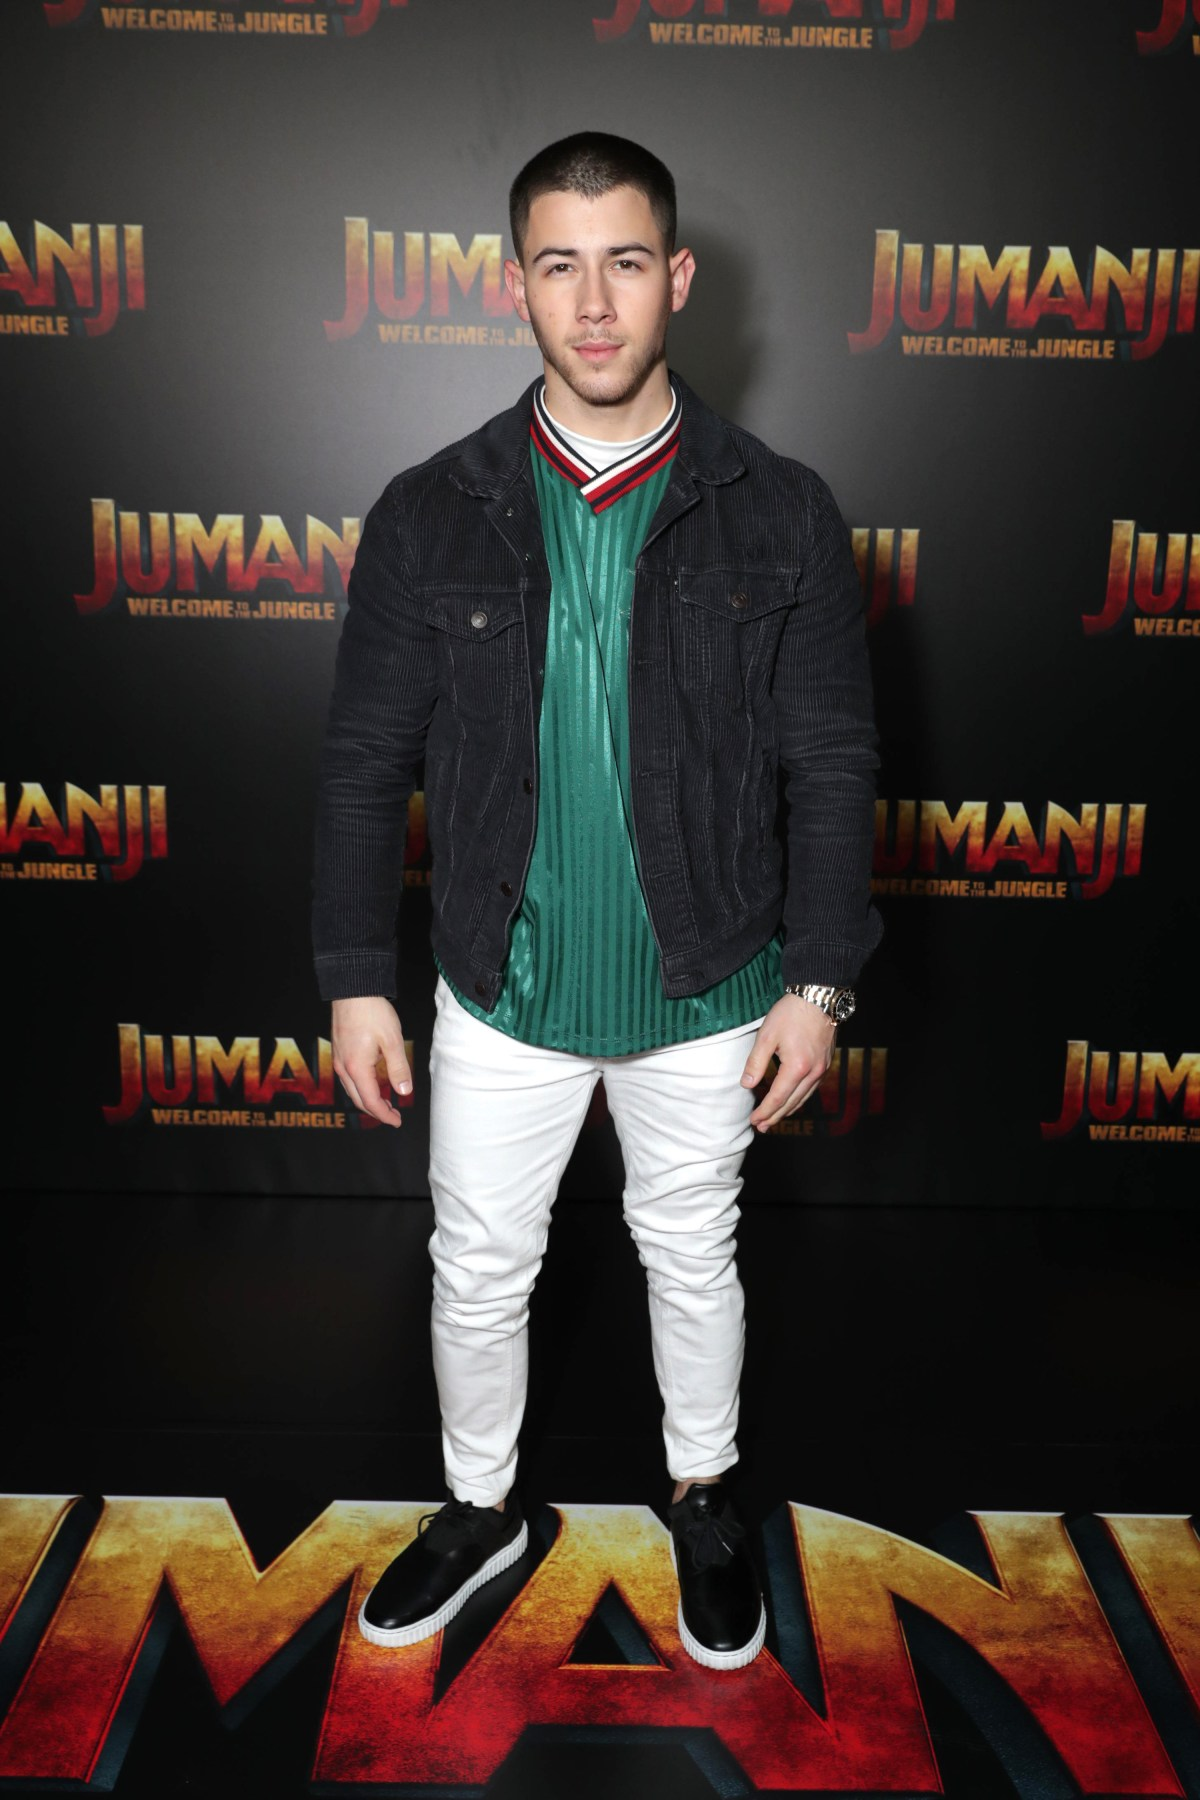 Nick Jonas seen at Columbia Pictures 'Jumanji: Welcome to the Jungle' photo call at 2017 CinemaCon on Monday, March 27, 2017, in Las Vegas.